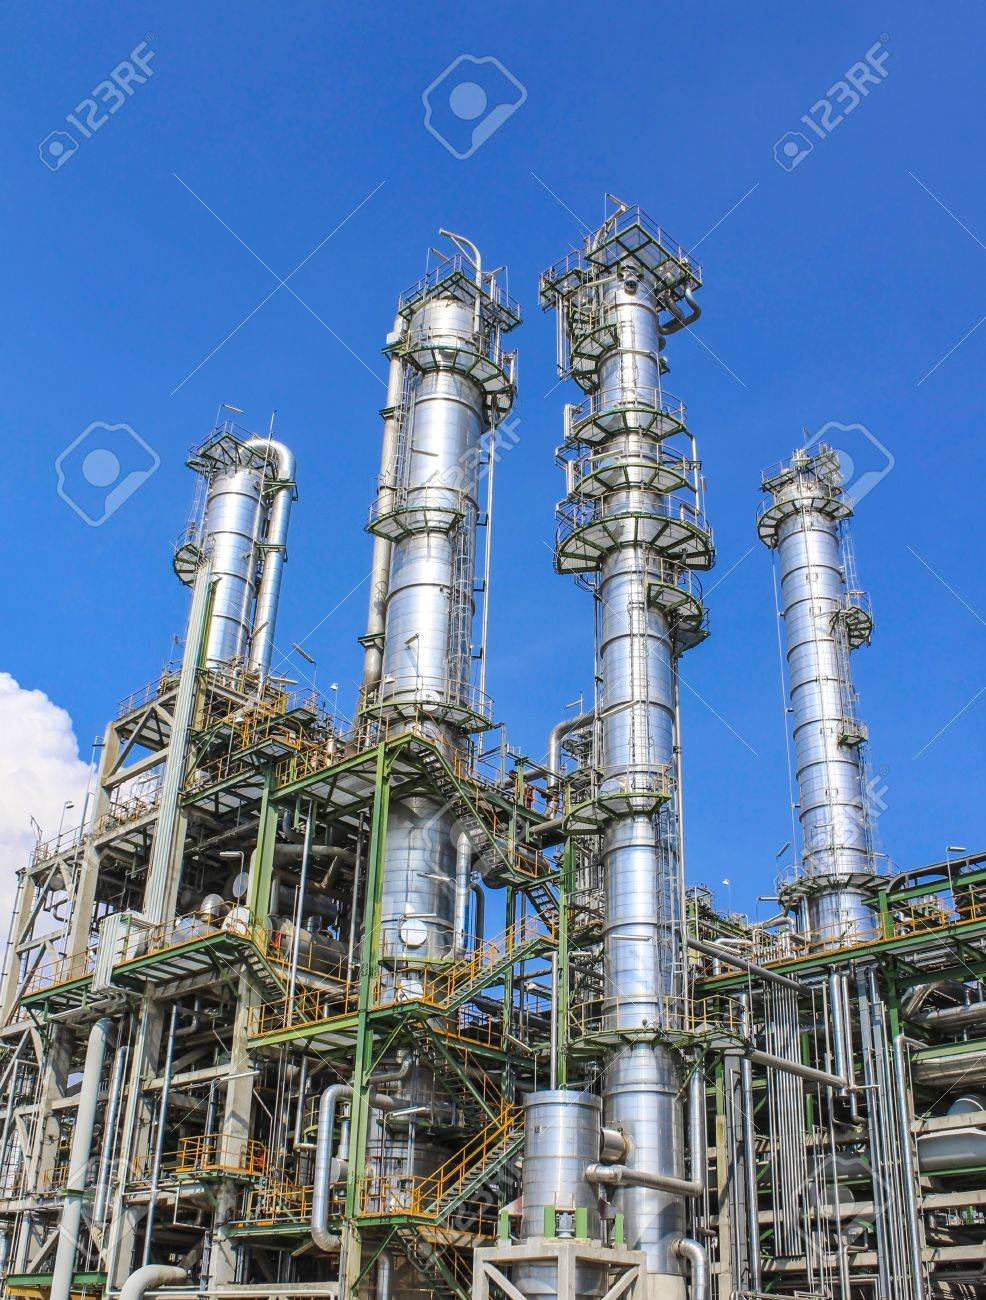 Structure of Oil and chemical factory in day time - 16148443